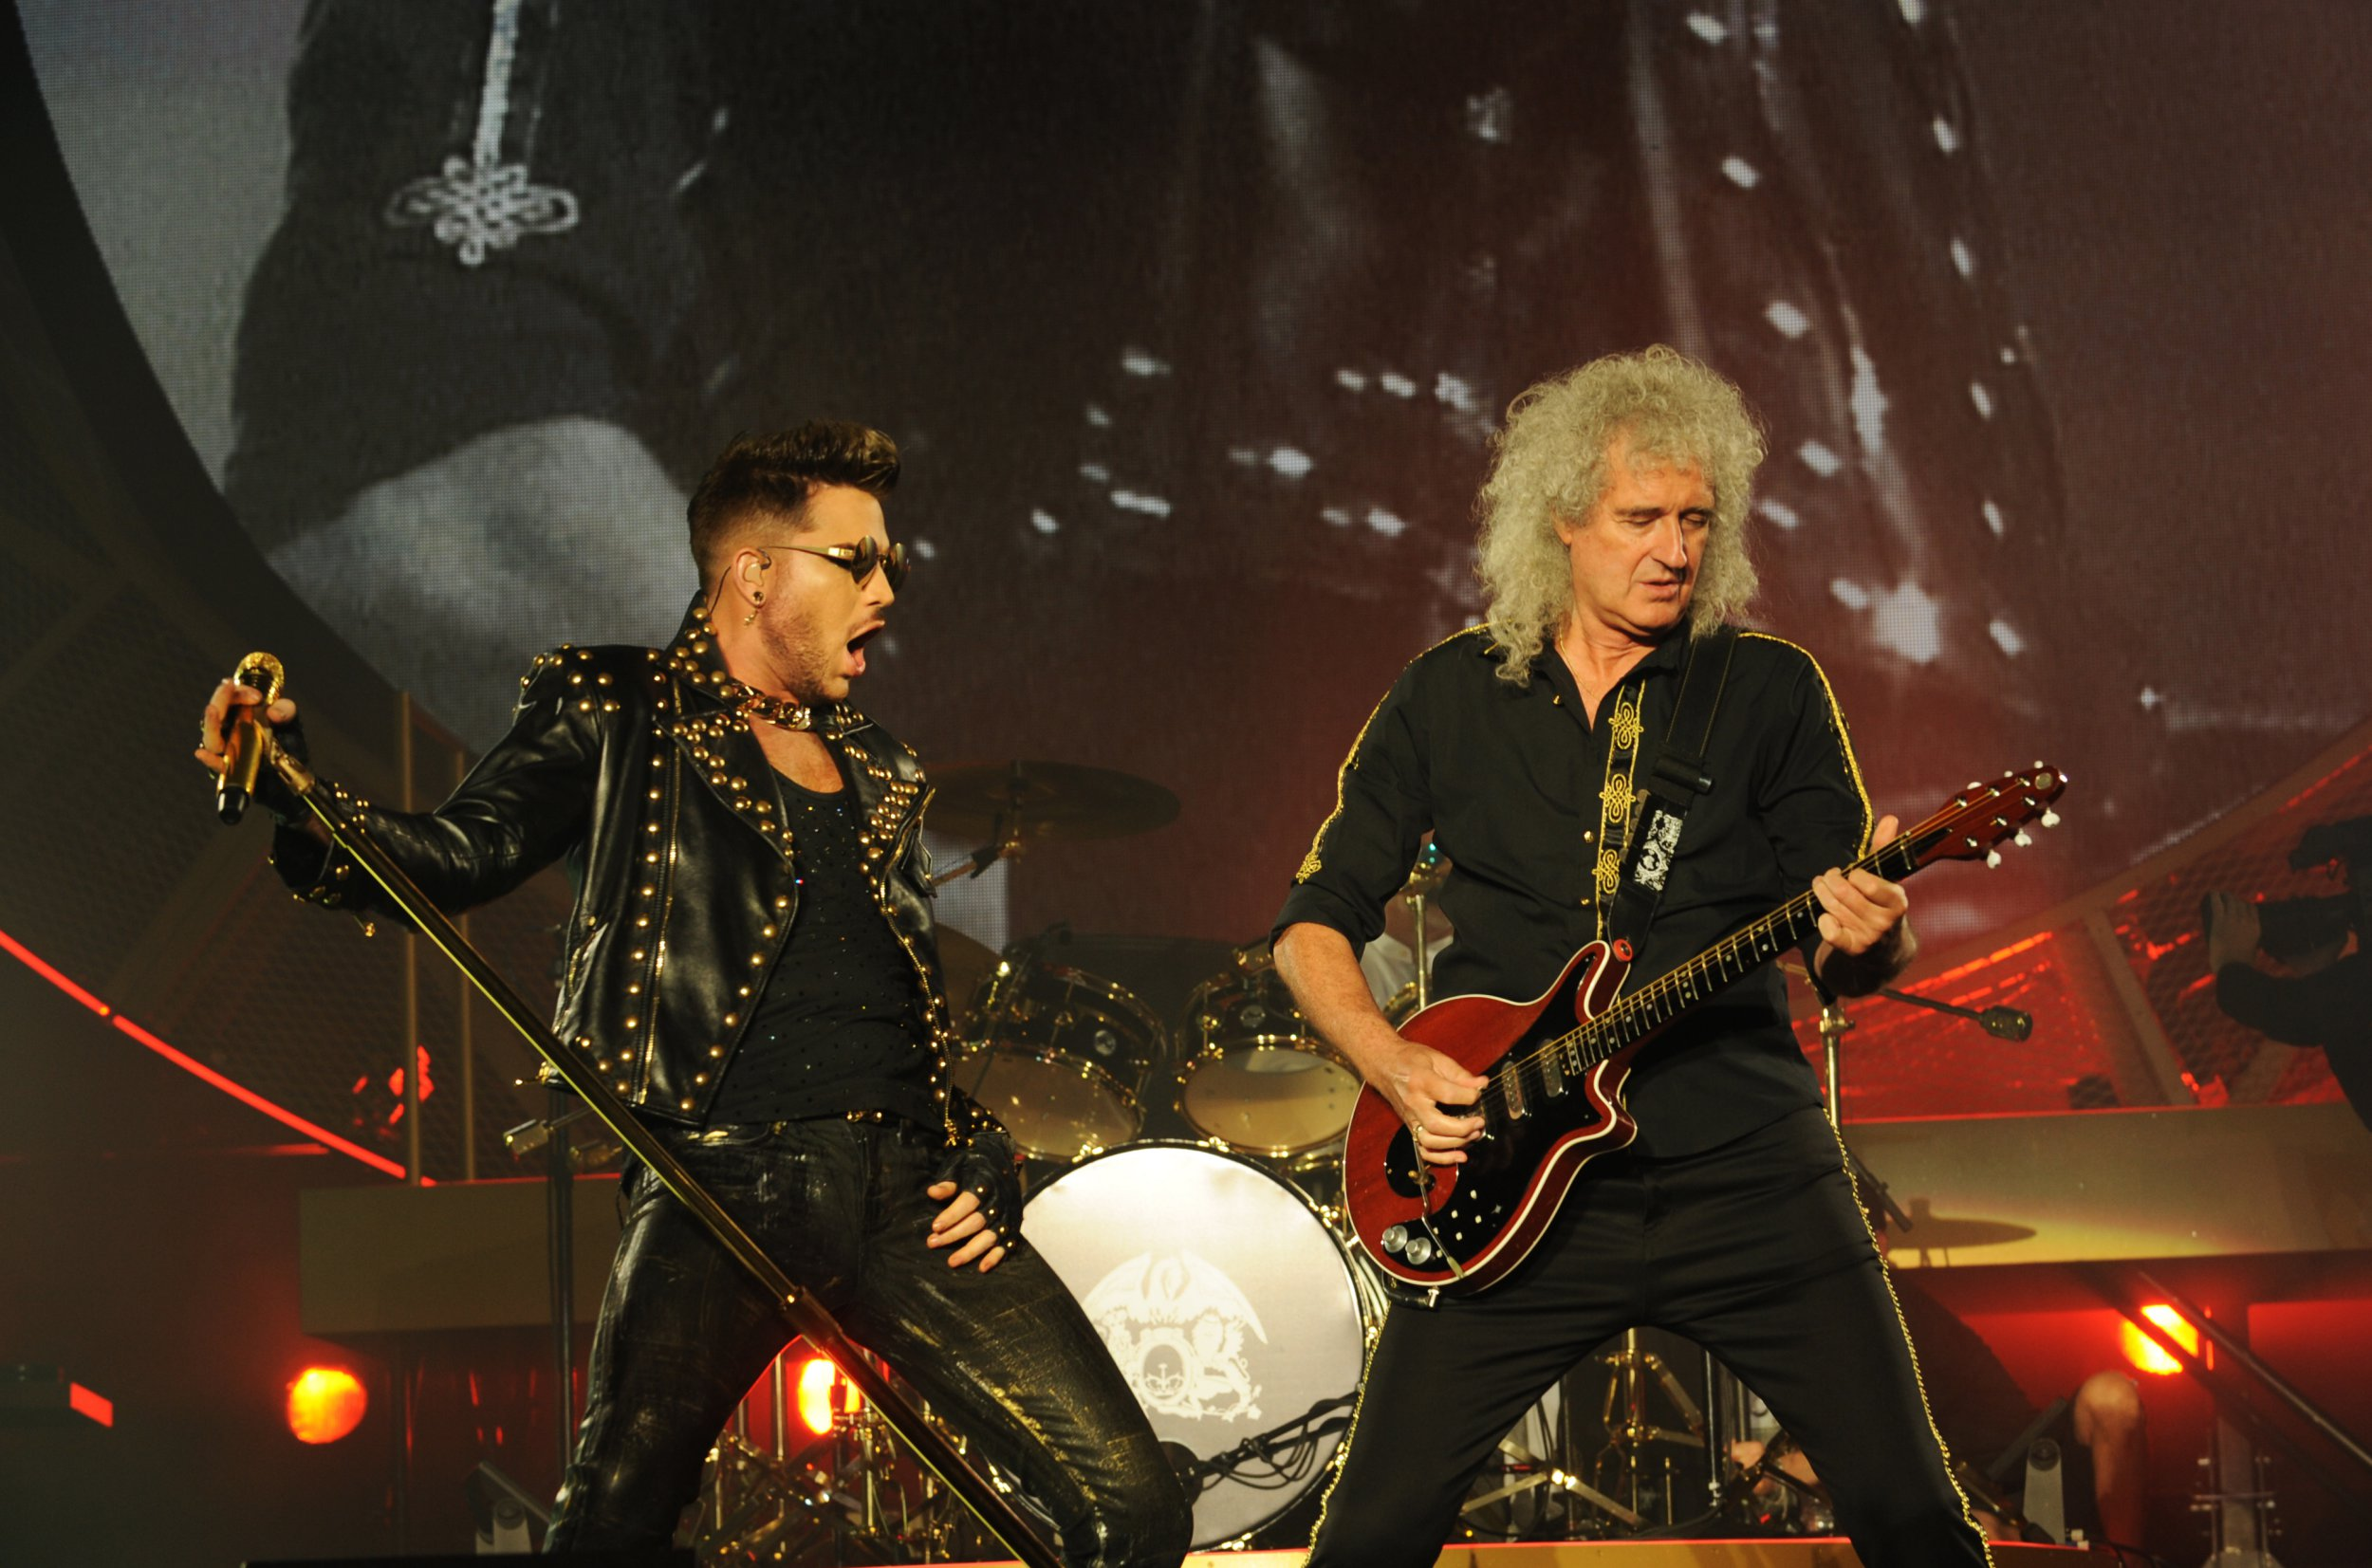 Queen announce first full UK tour in three years marking 40 epic years of We Are The Champions and We Will Rock You